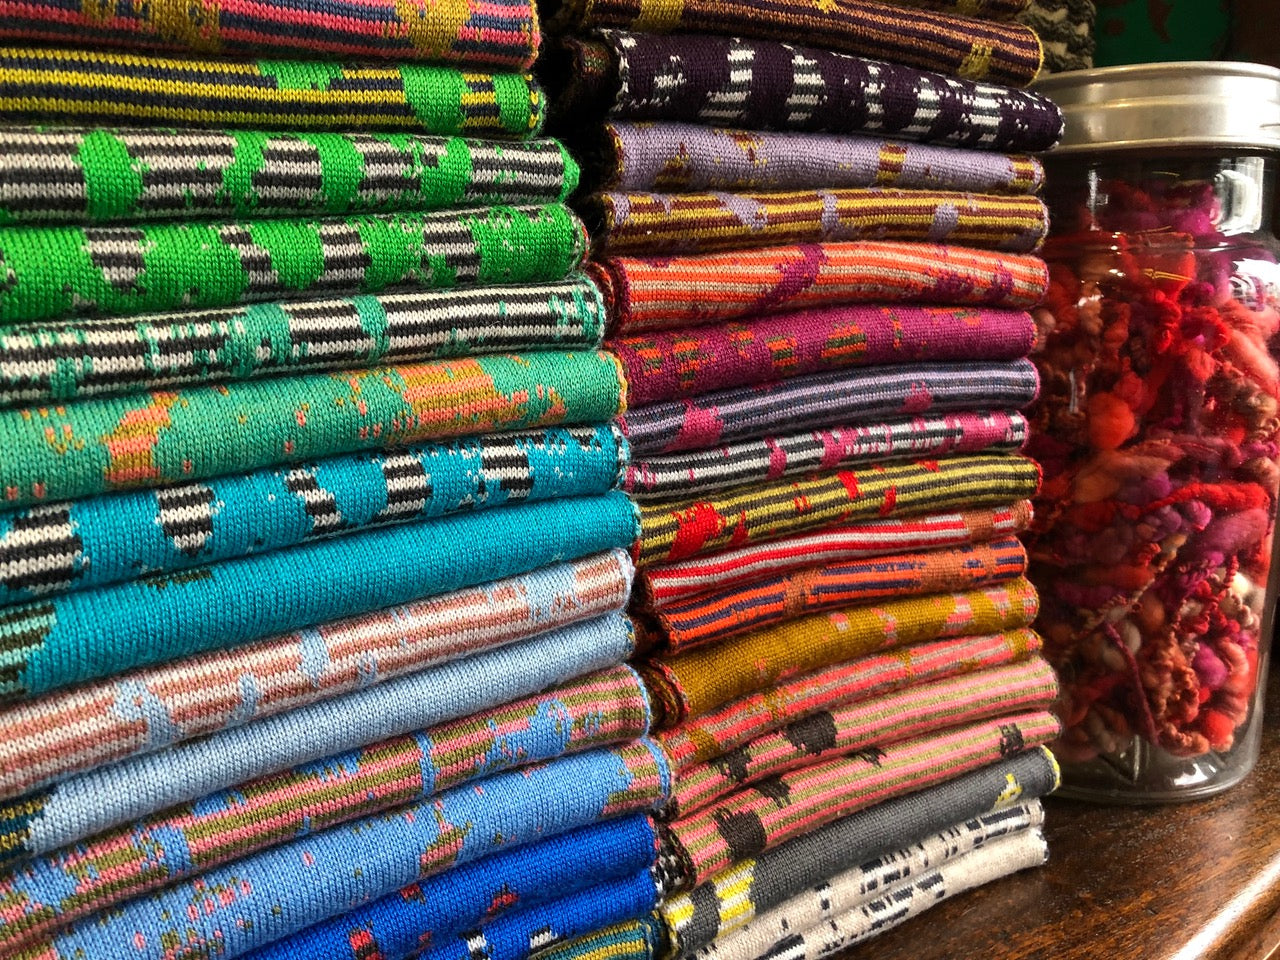 Stacks of contemporary Scottish knitwear - scarves - at the Nielanell studio shop in Hoswick, Shetland